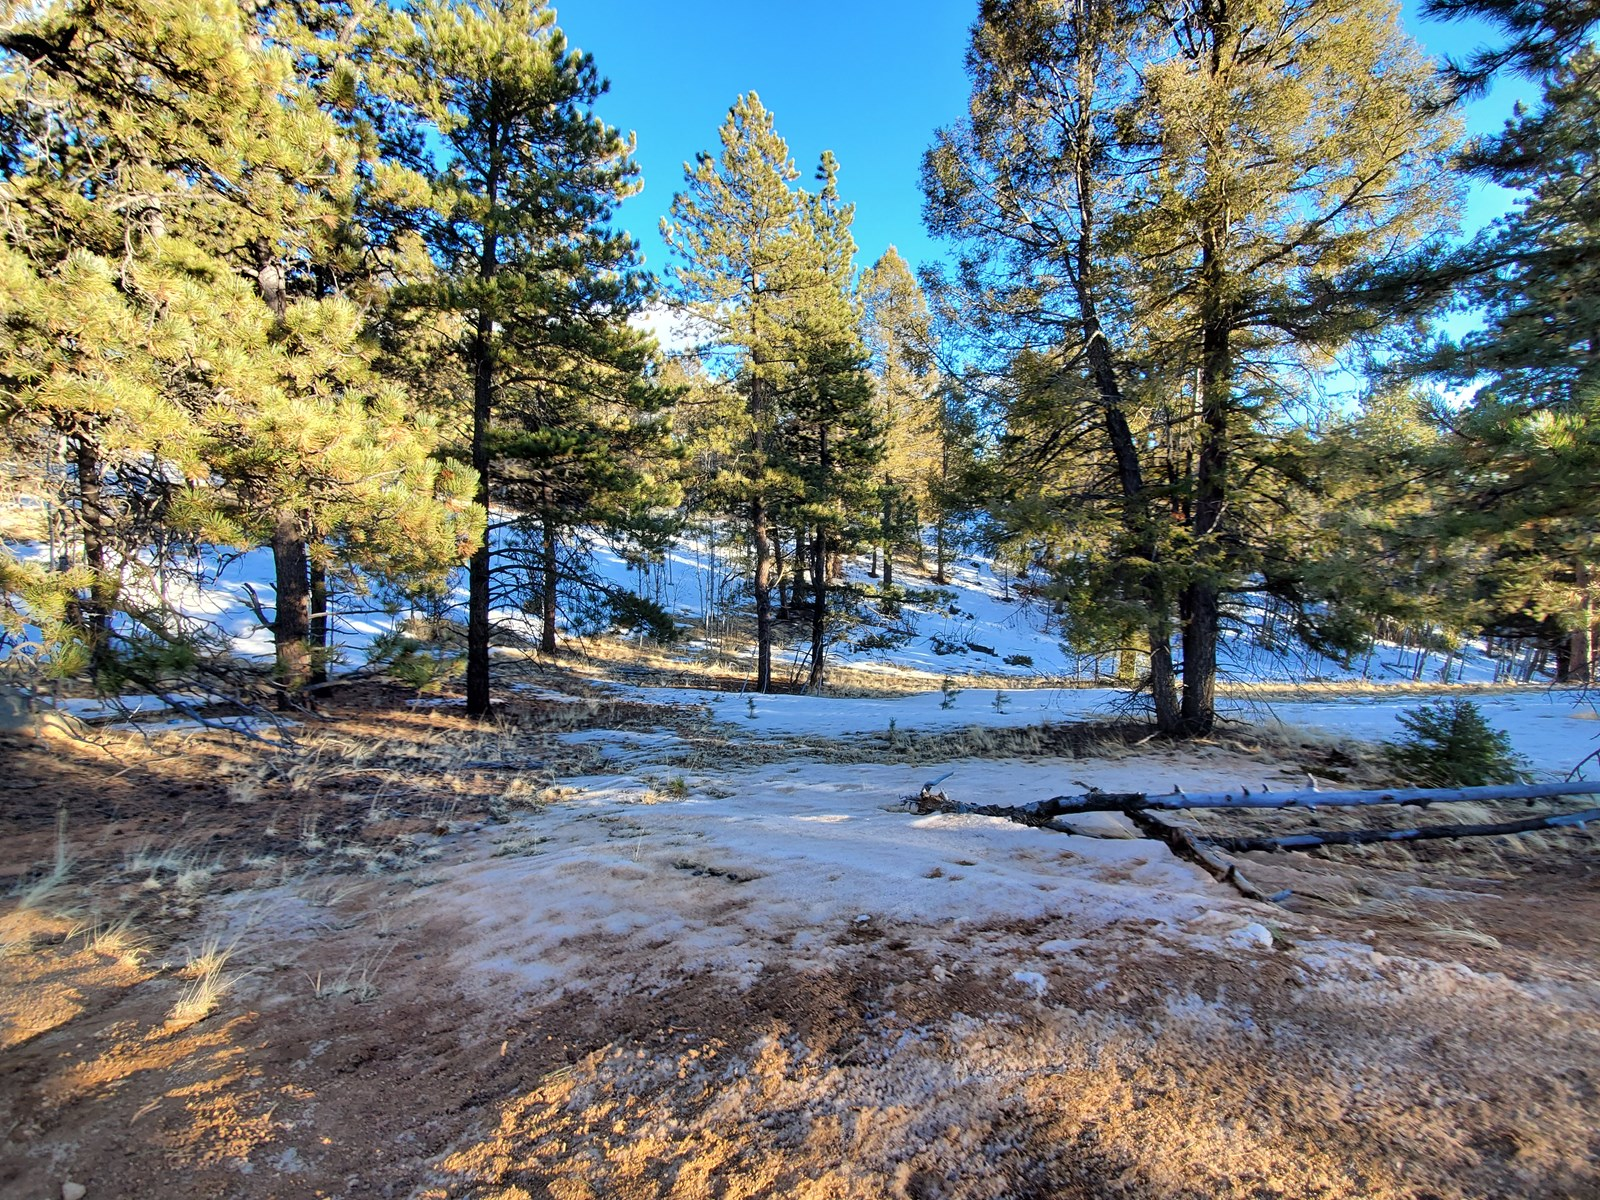 Land for Sale near Mueller State Park, Florissant CO